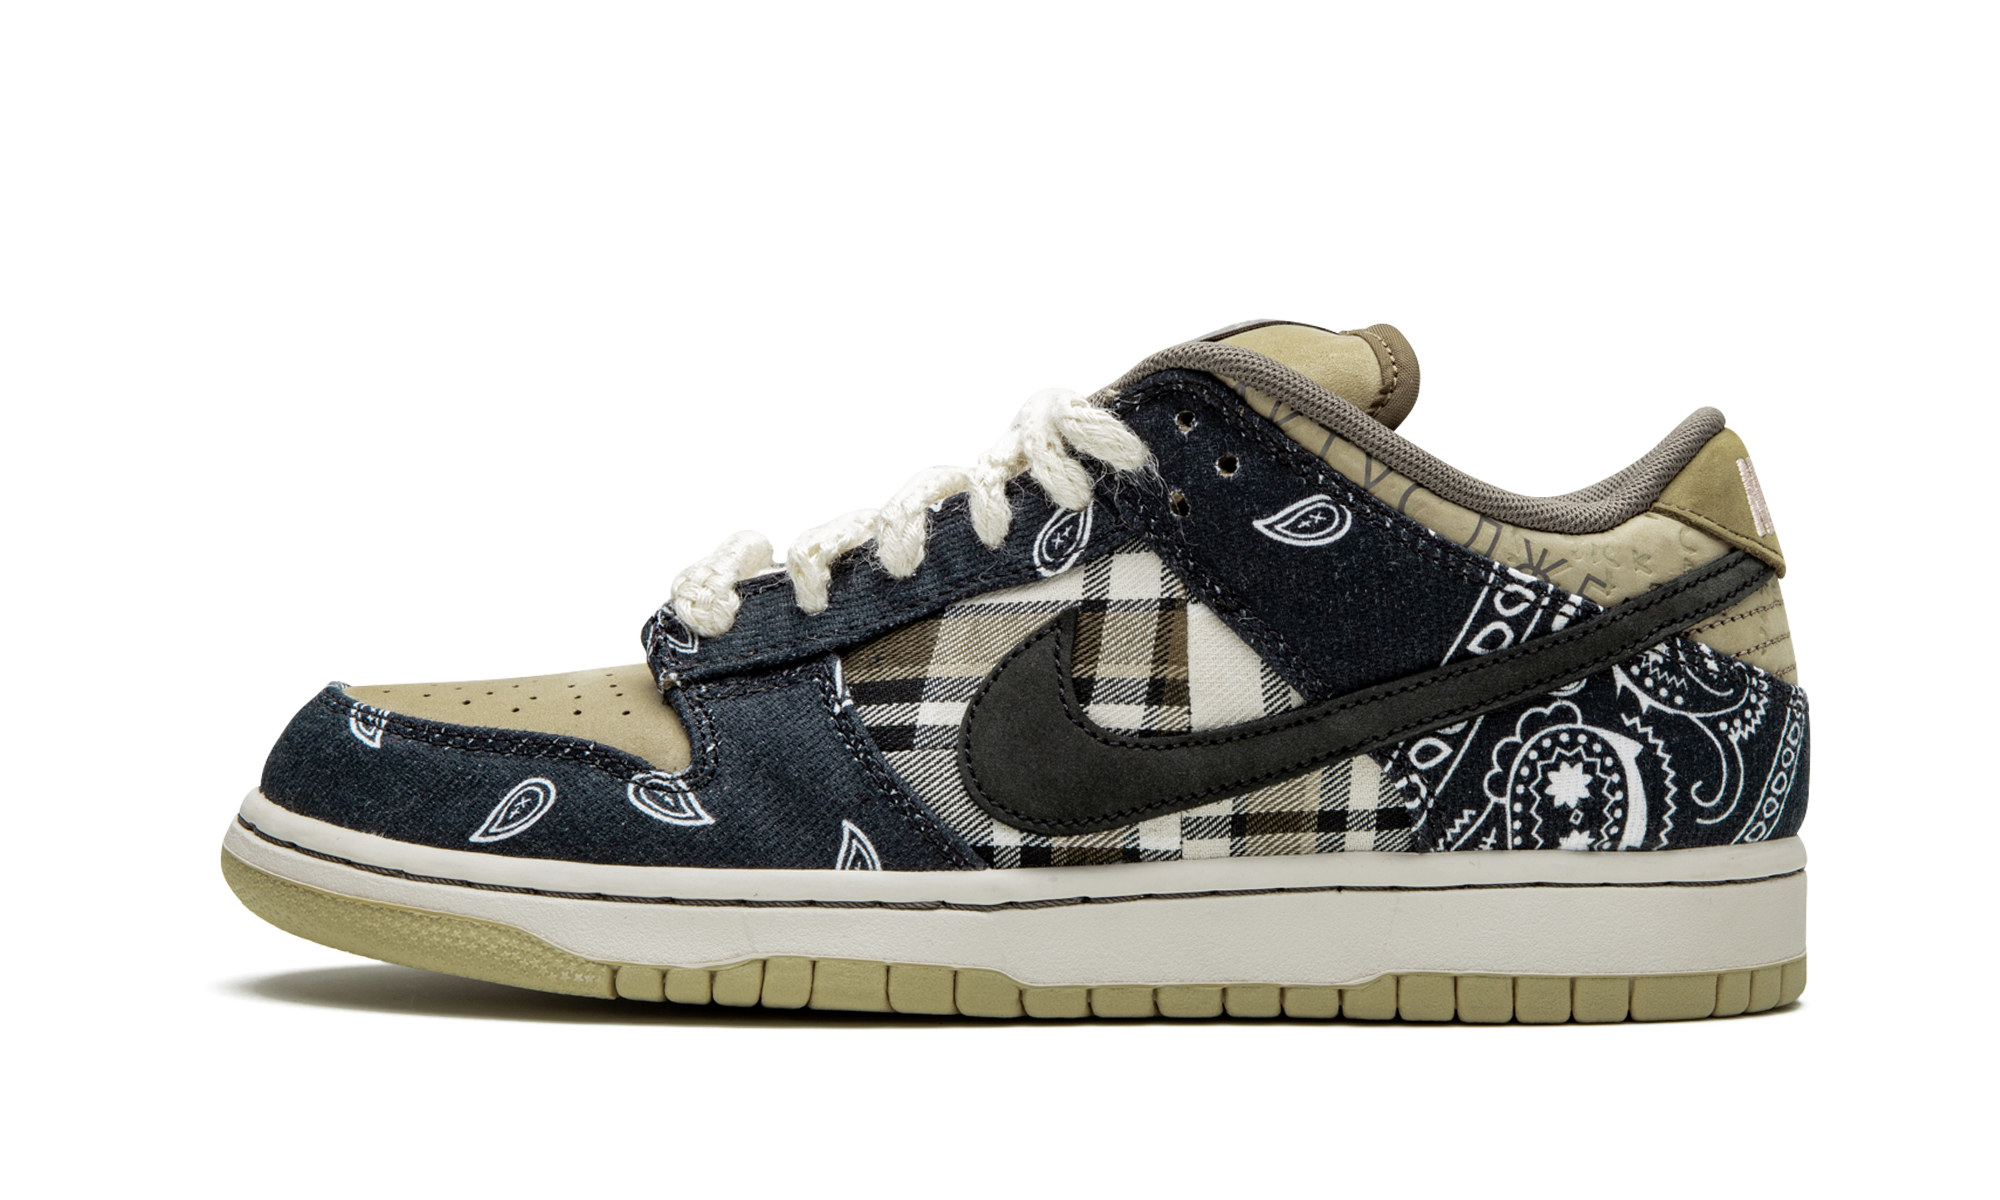 2月29日 発売予定 NIKE SB DUNK LOW PRM QS